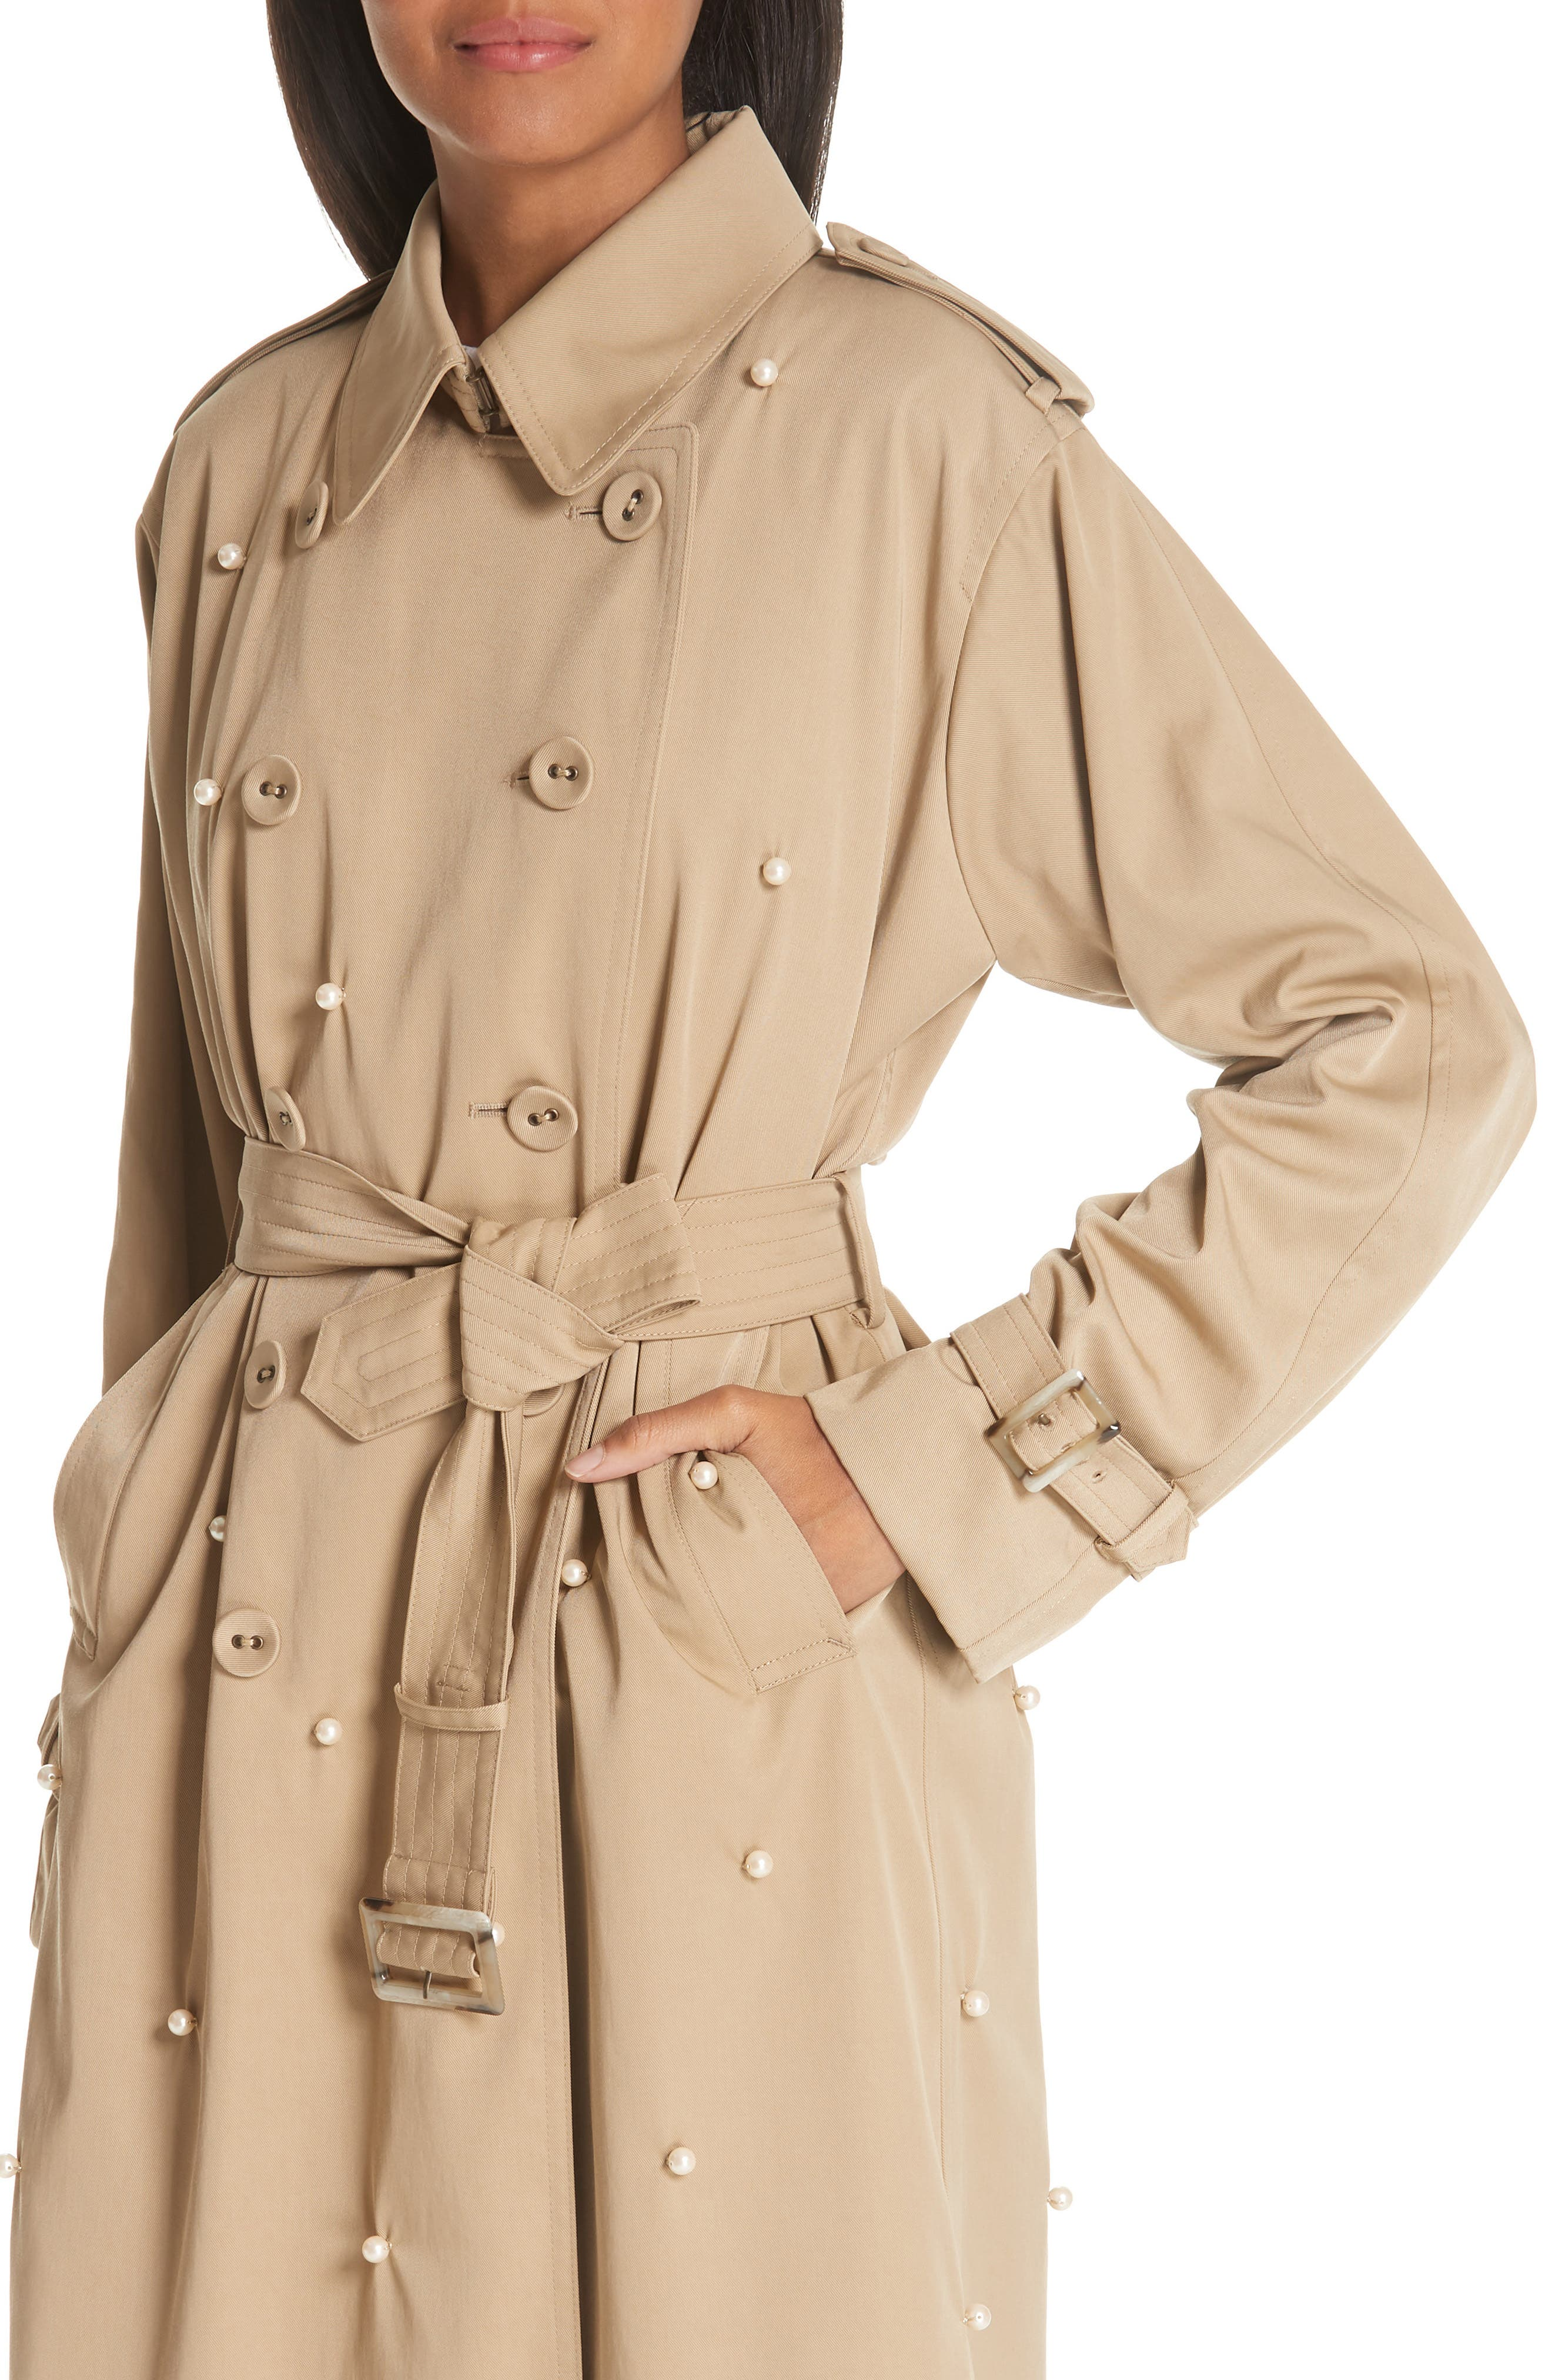 Imitation Pearl Embellished Trench Coat,                             Alternate thumbnail 4, color,                             BEIGE BEIG